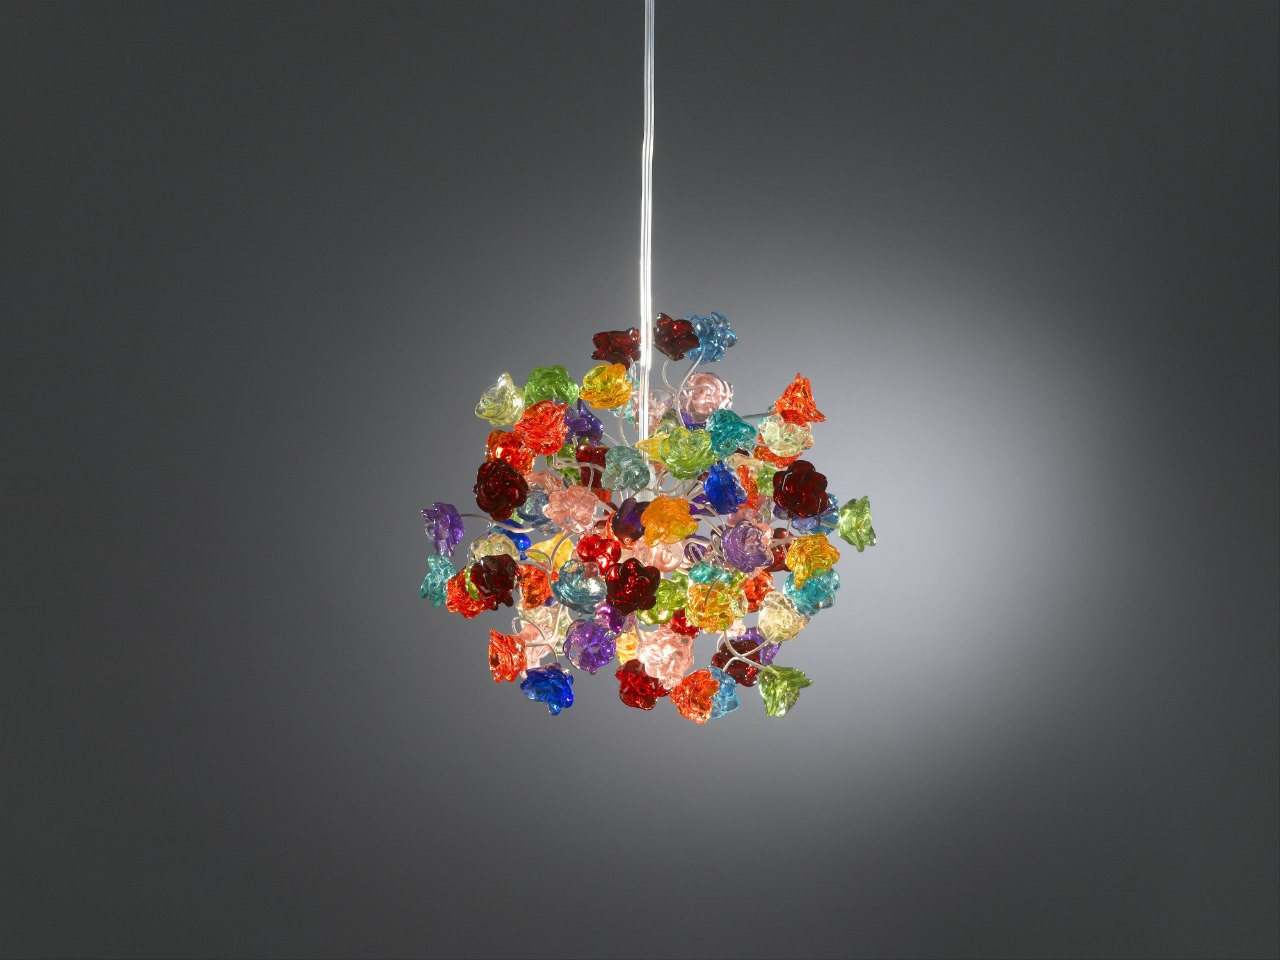 Ceiling Light Fixture With Rainbow Color Roses Pendent Light